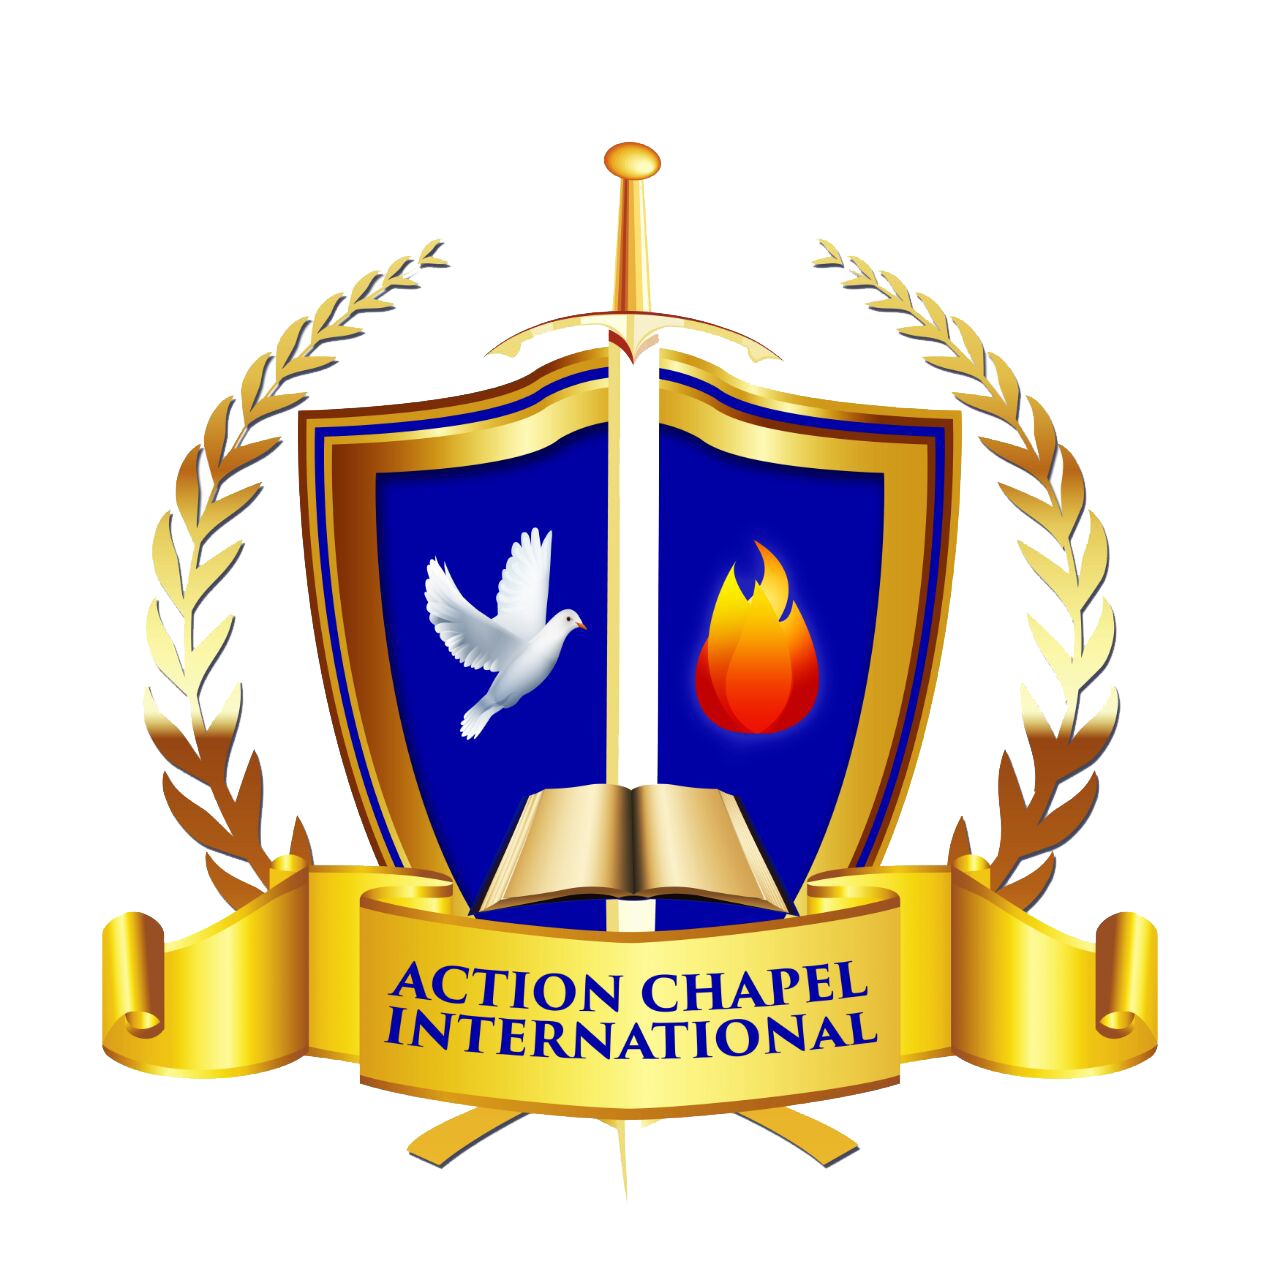 Action Chapel International UK